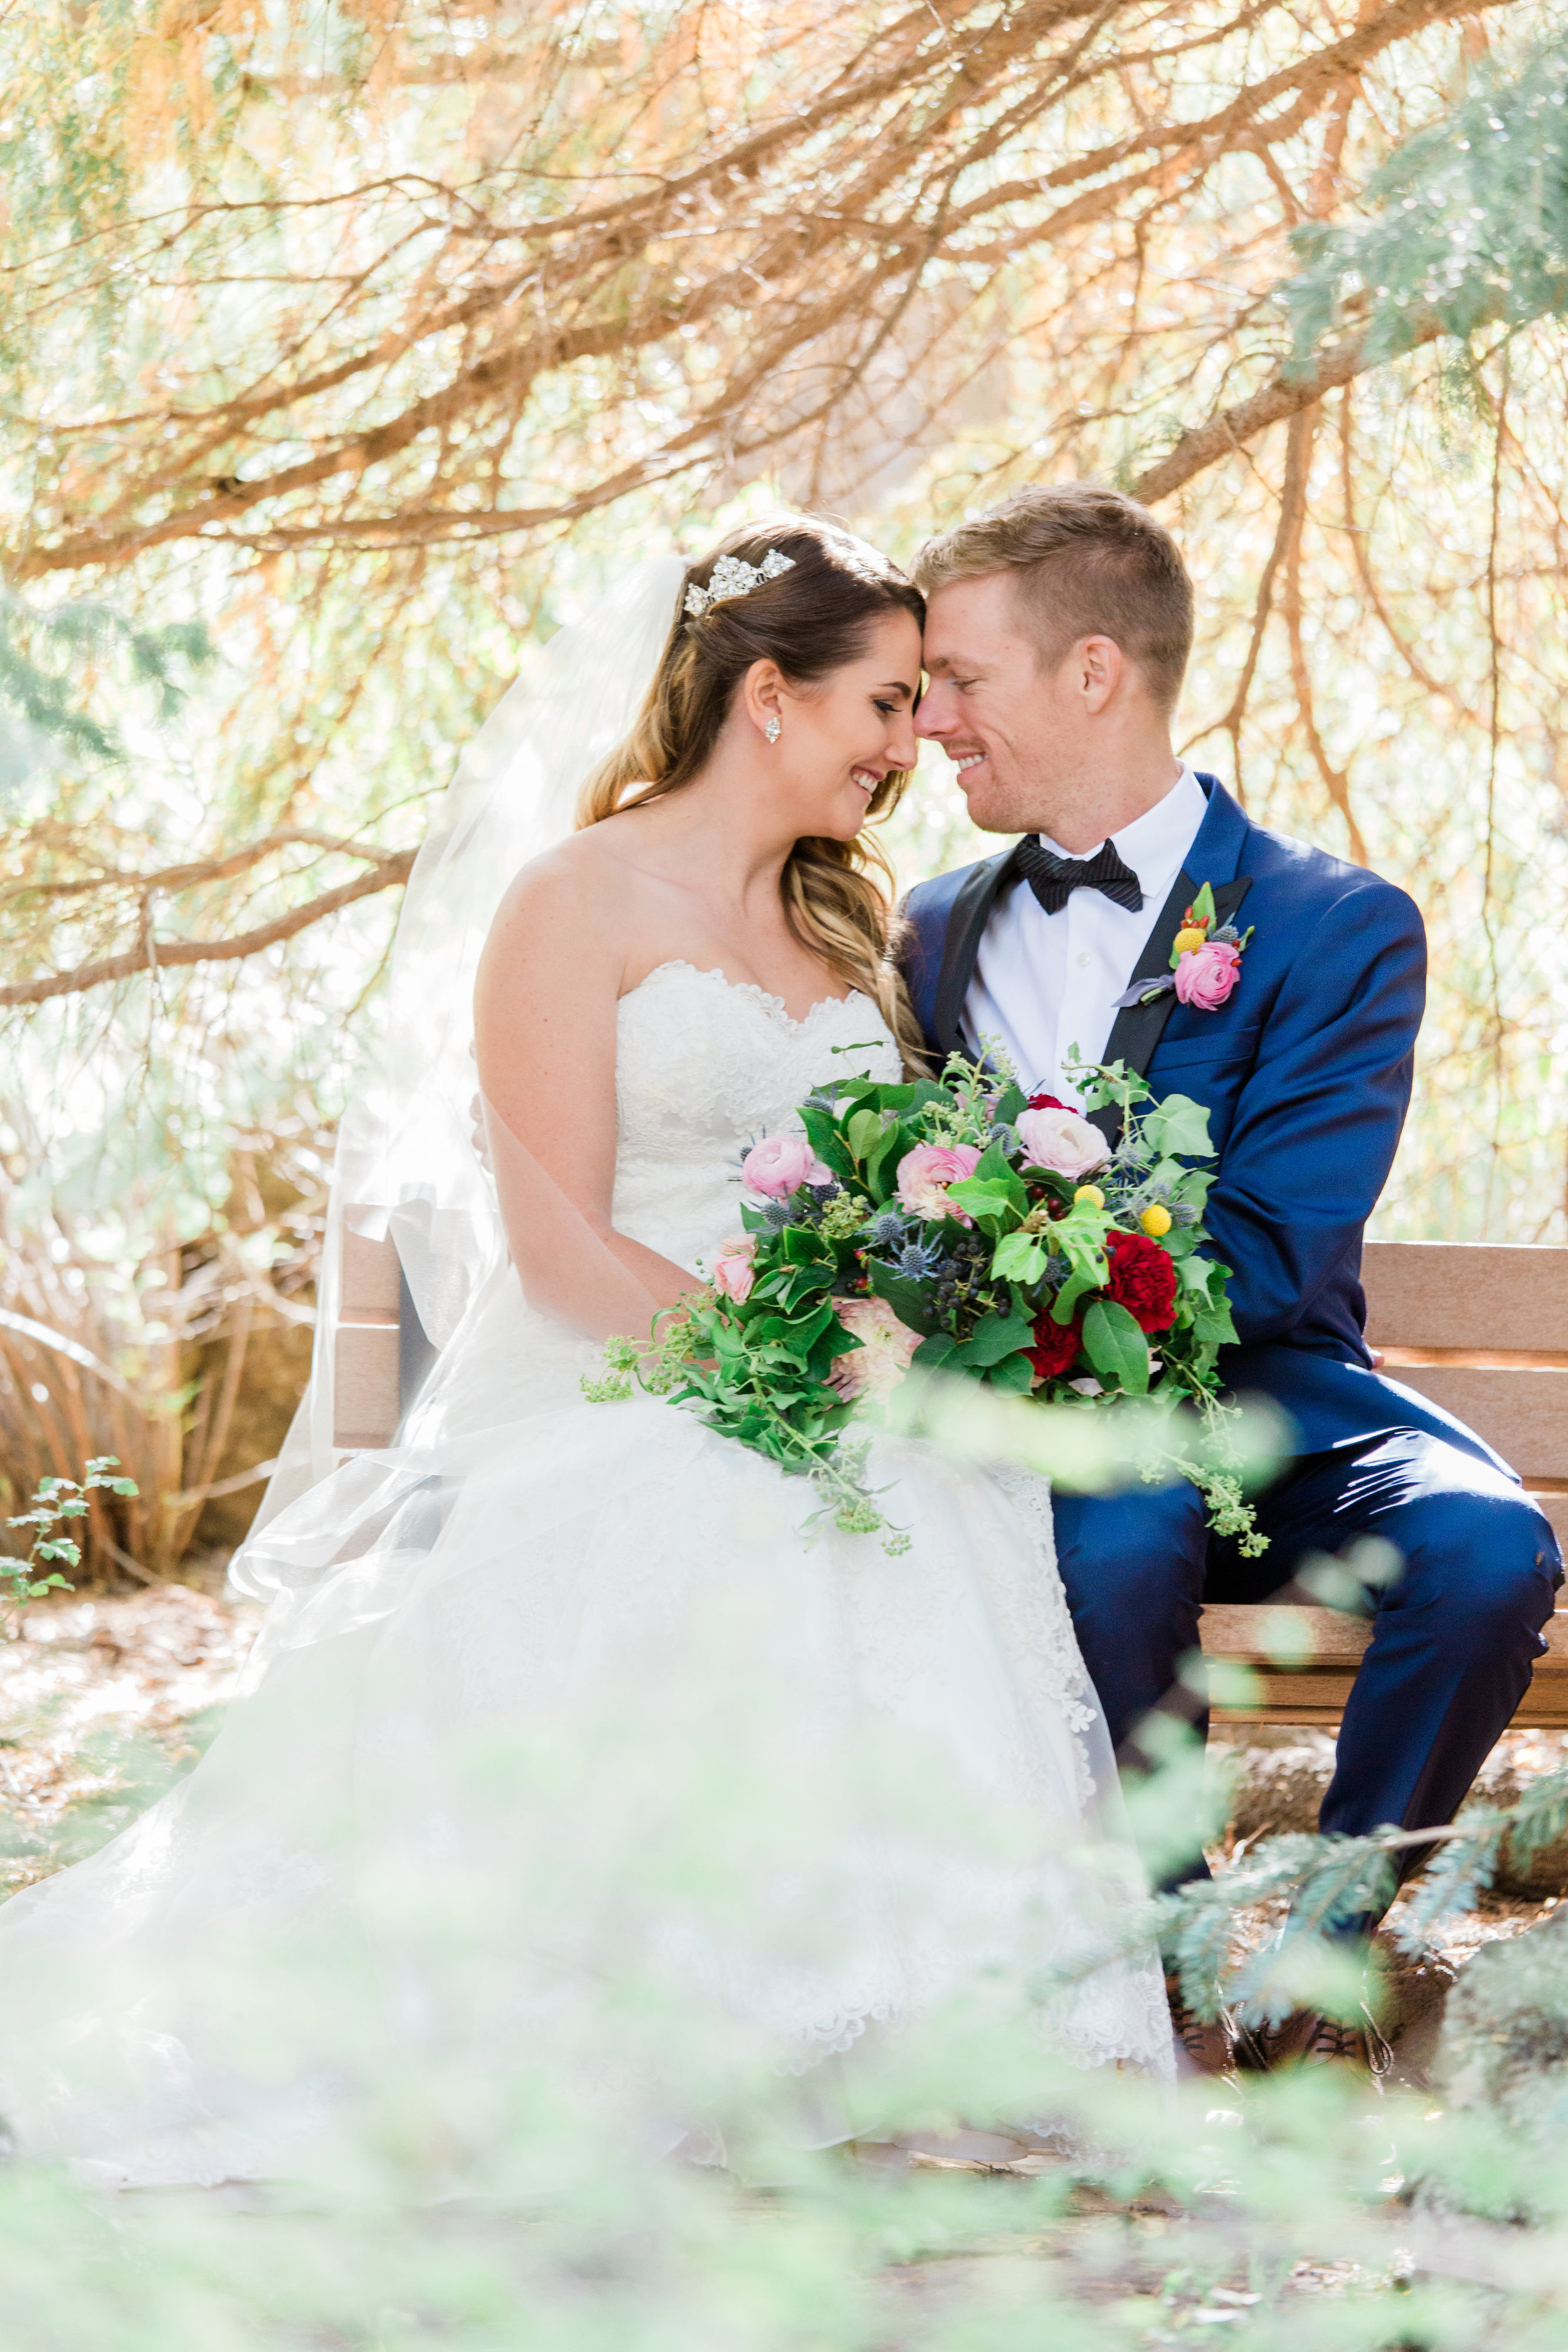 Flagstaff Forest Wedding - Bride and Groom